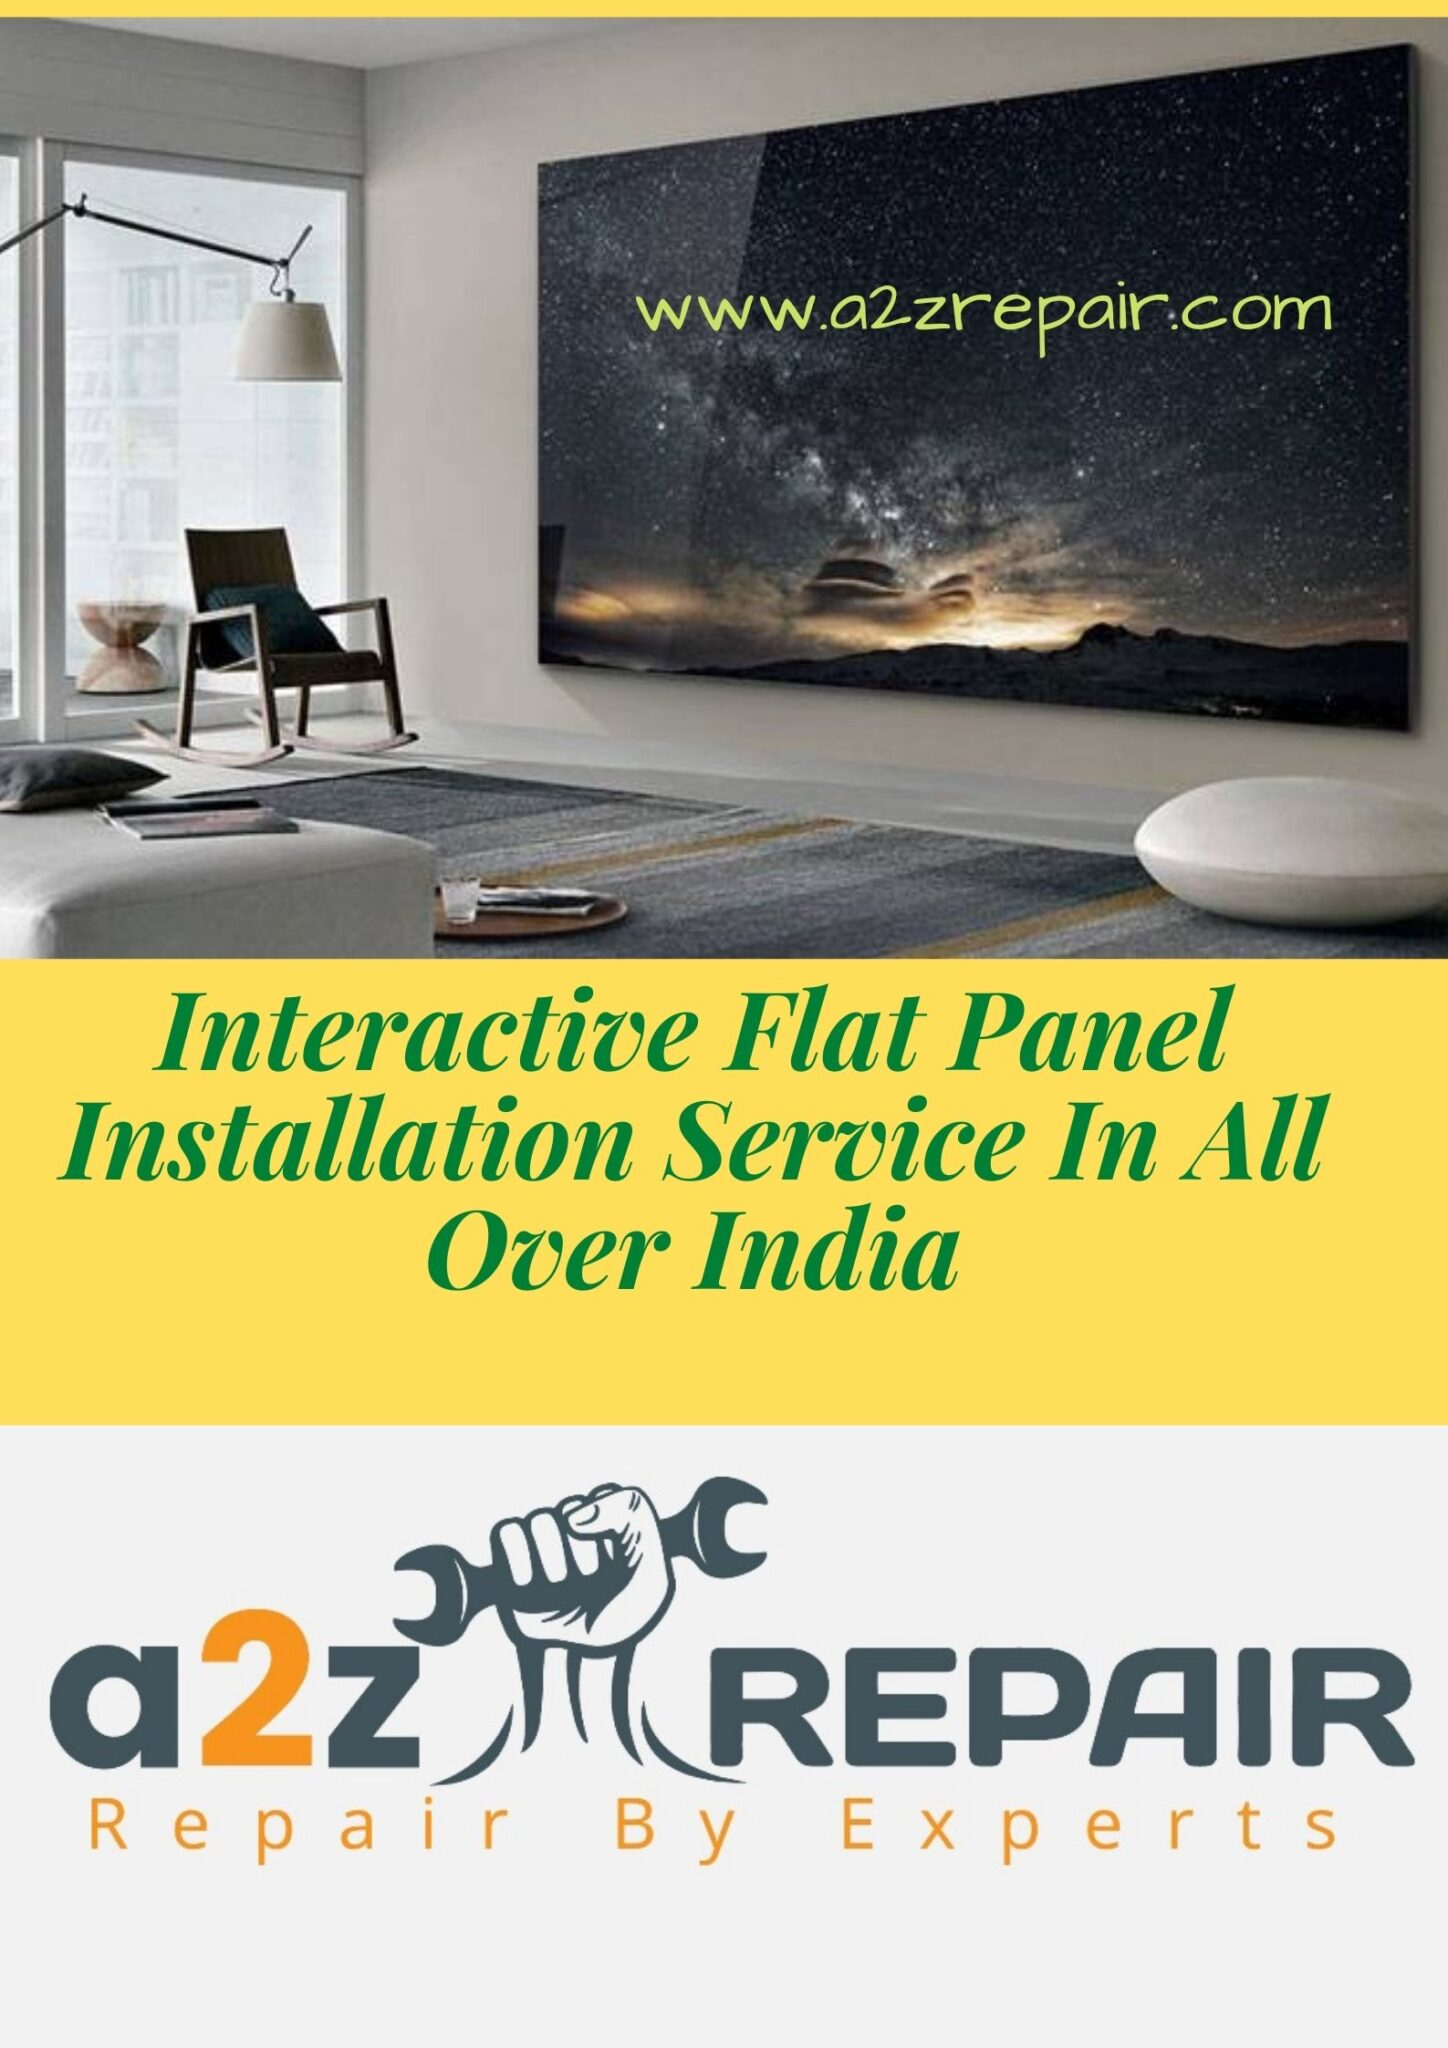 Repair and Installation service